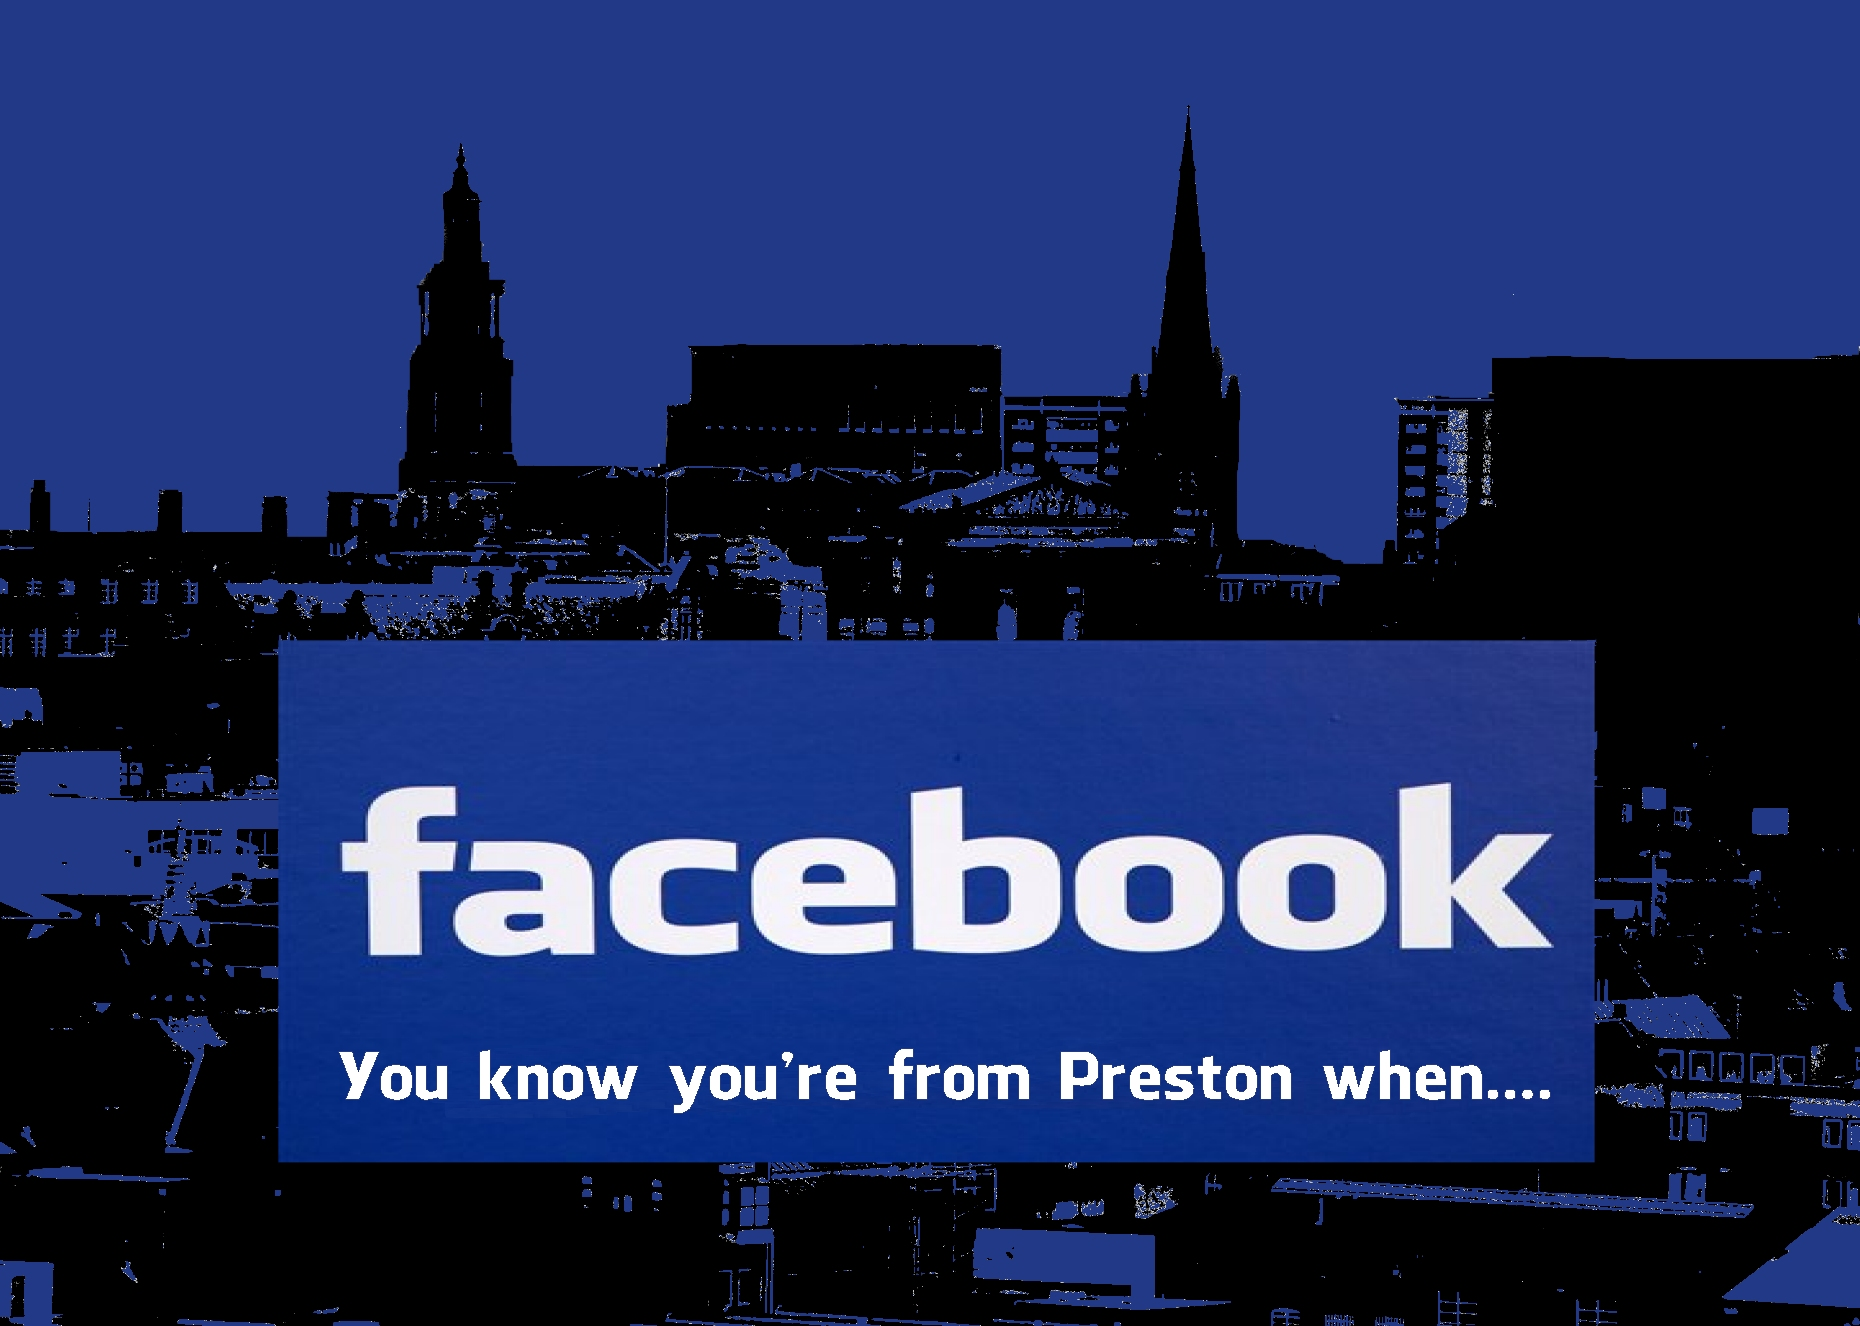 You know you're from Preston when....